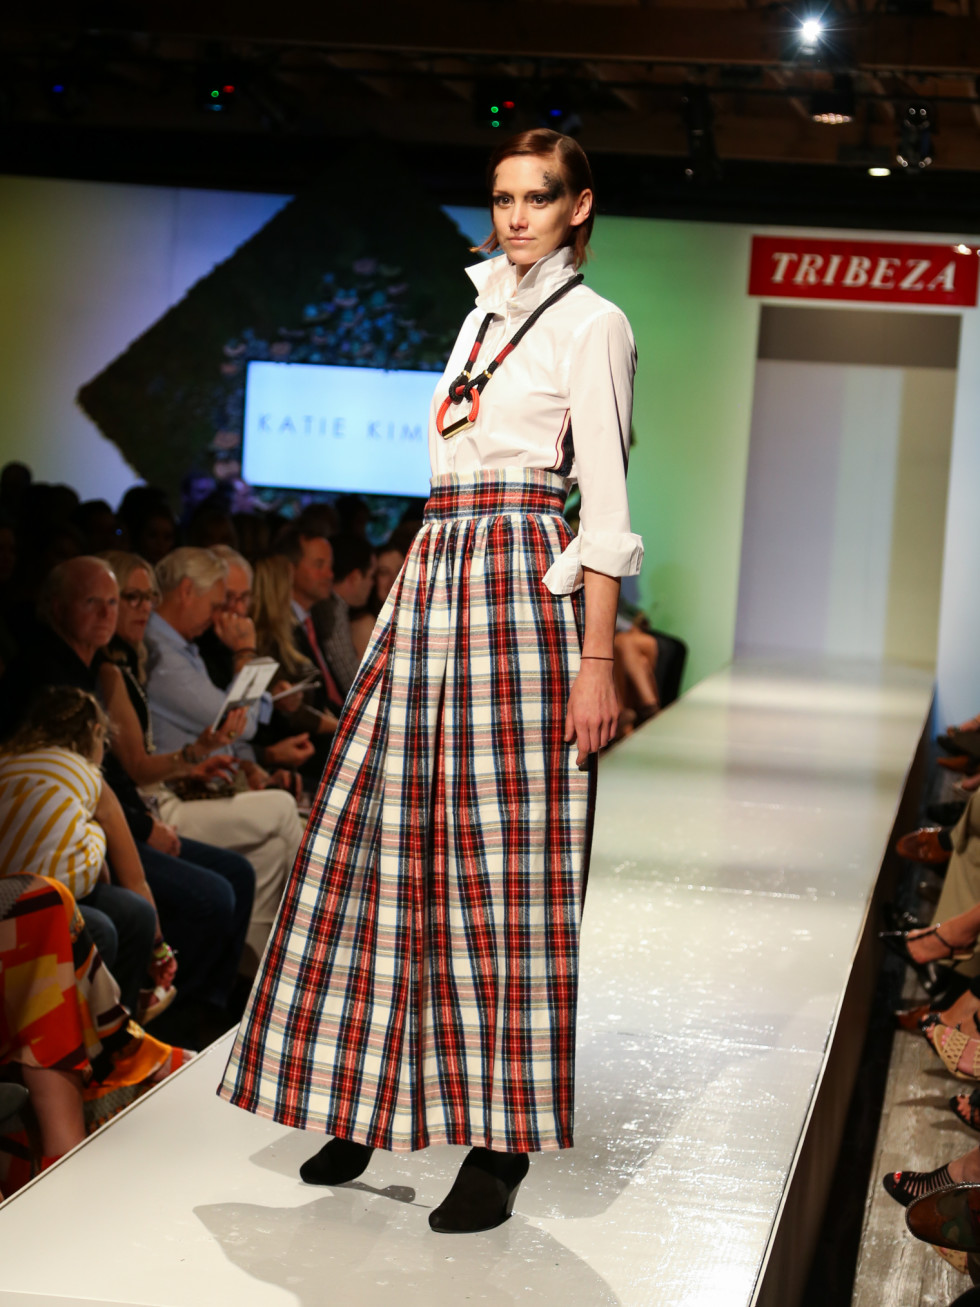 Tribeza Fashion Show 2015 at Brazos Hall Katie Kime